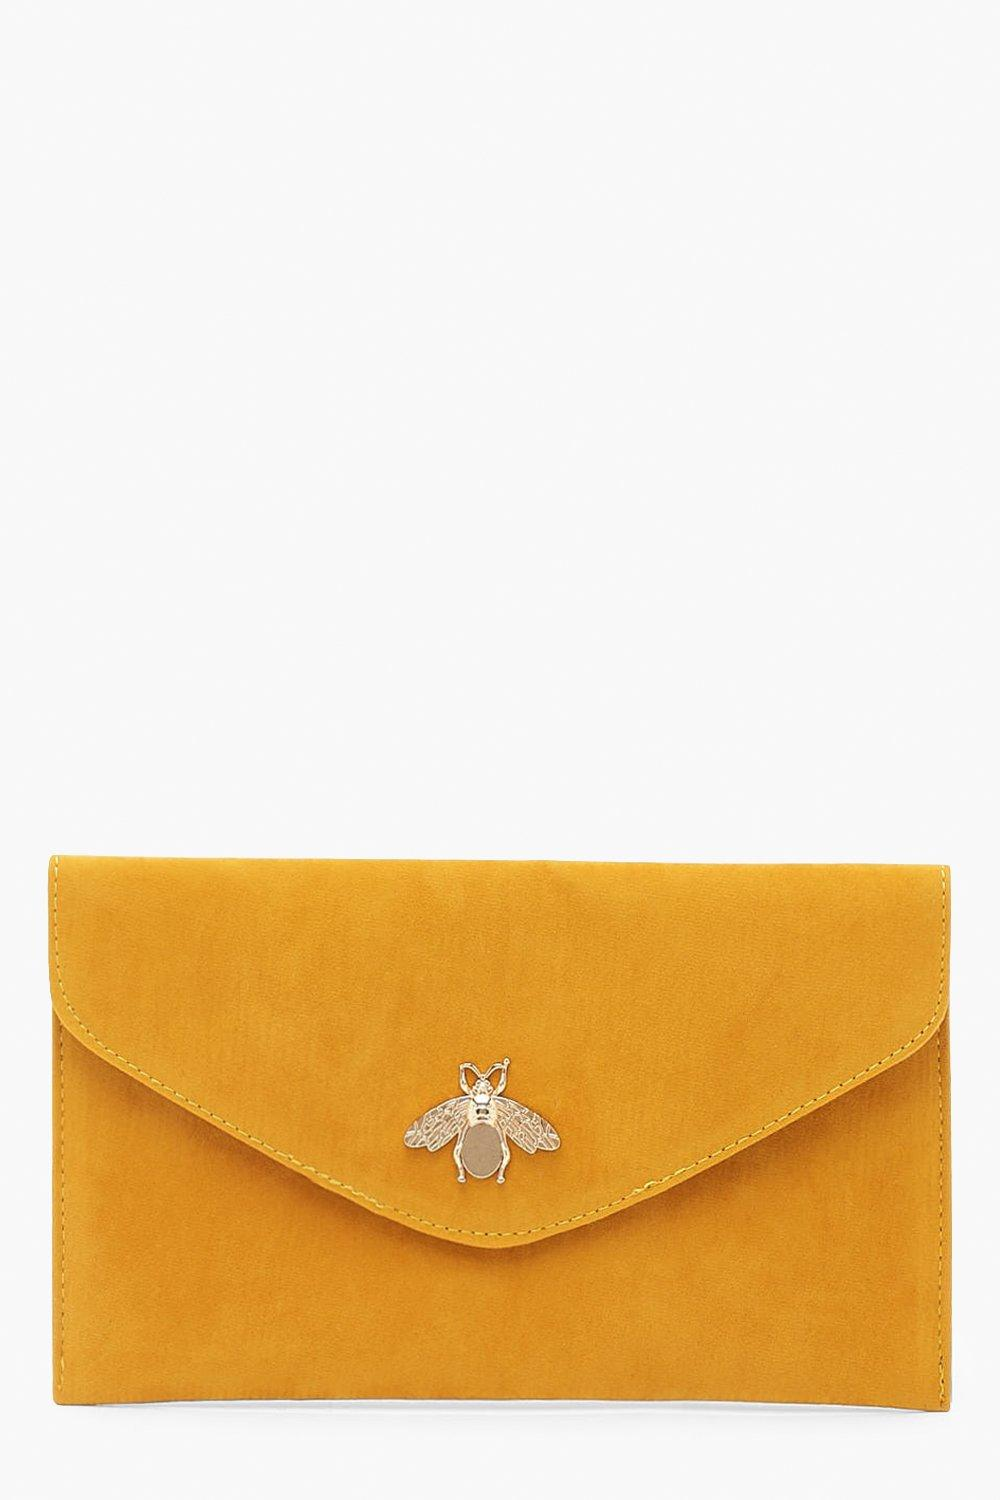 boohoo Womens Metal Bug Envelop Clutch Bag - Yellow - One Size, Yellow